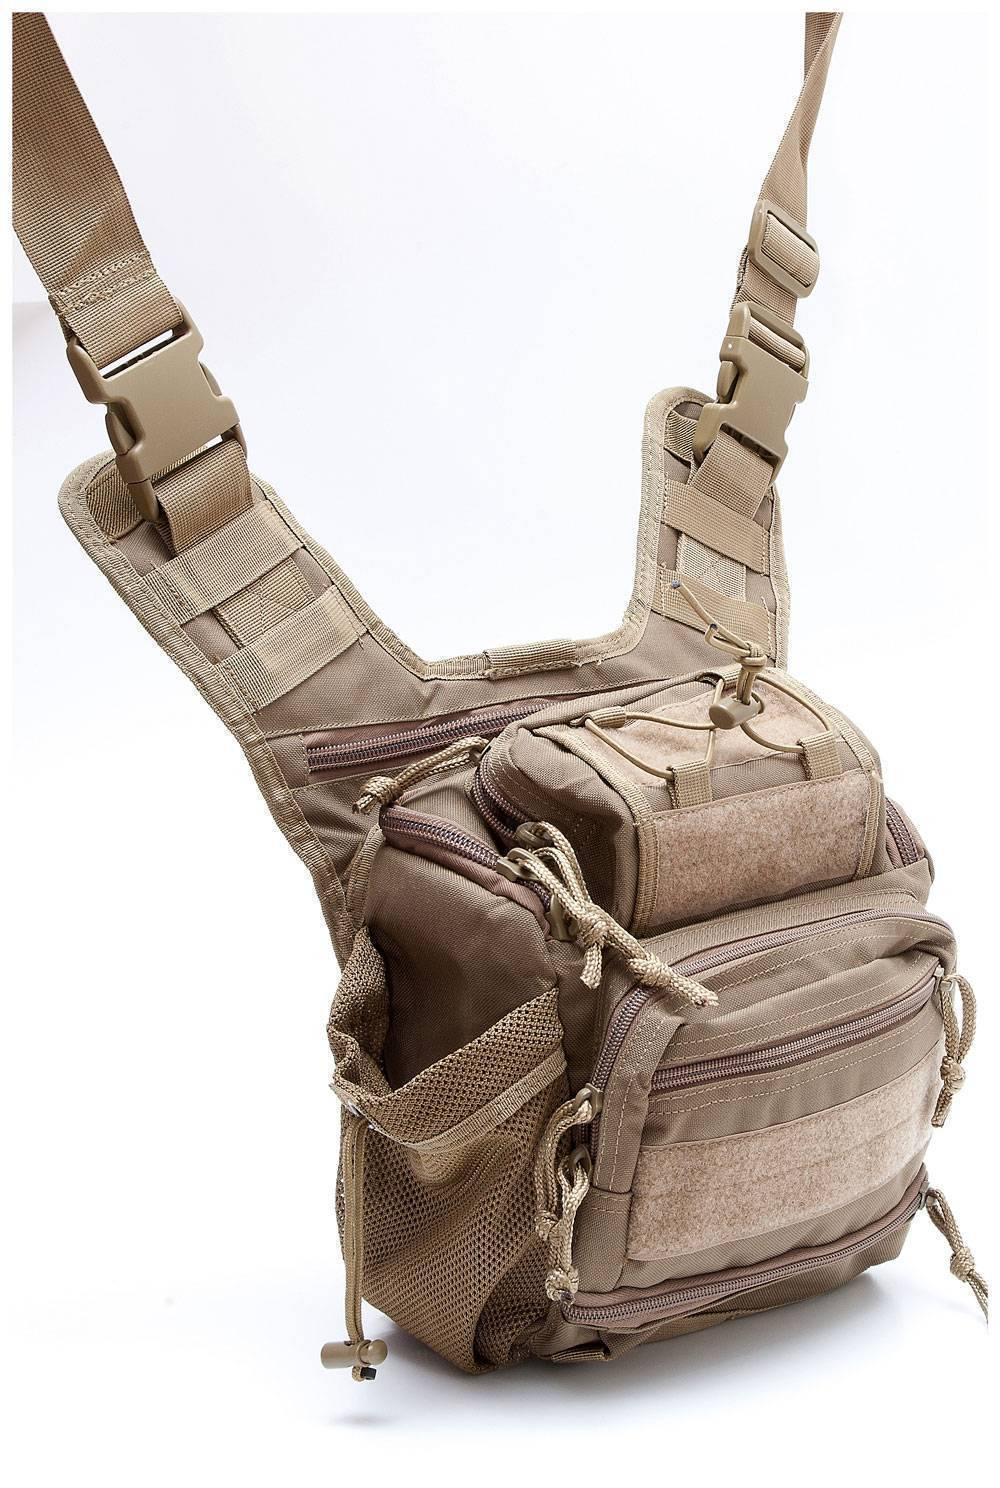 Тактическая плечевая сумка Defcon 5 Tactical shoulder bag multi pocket Coyote Tan D5-MSB05CT